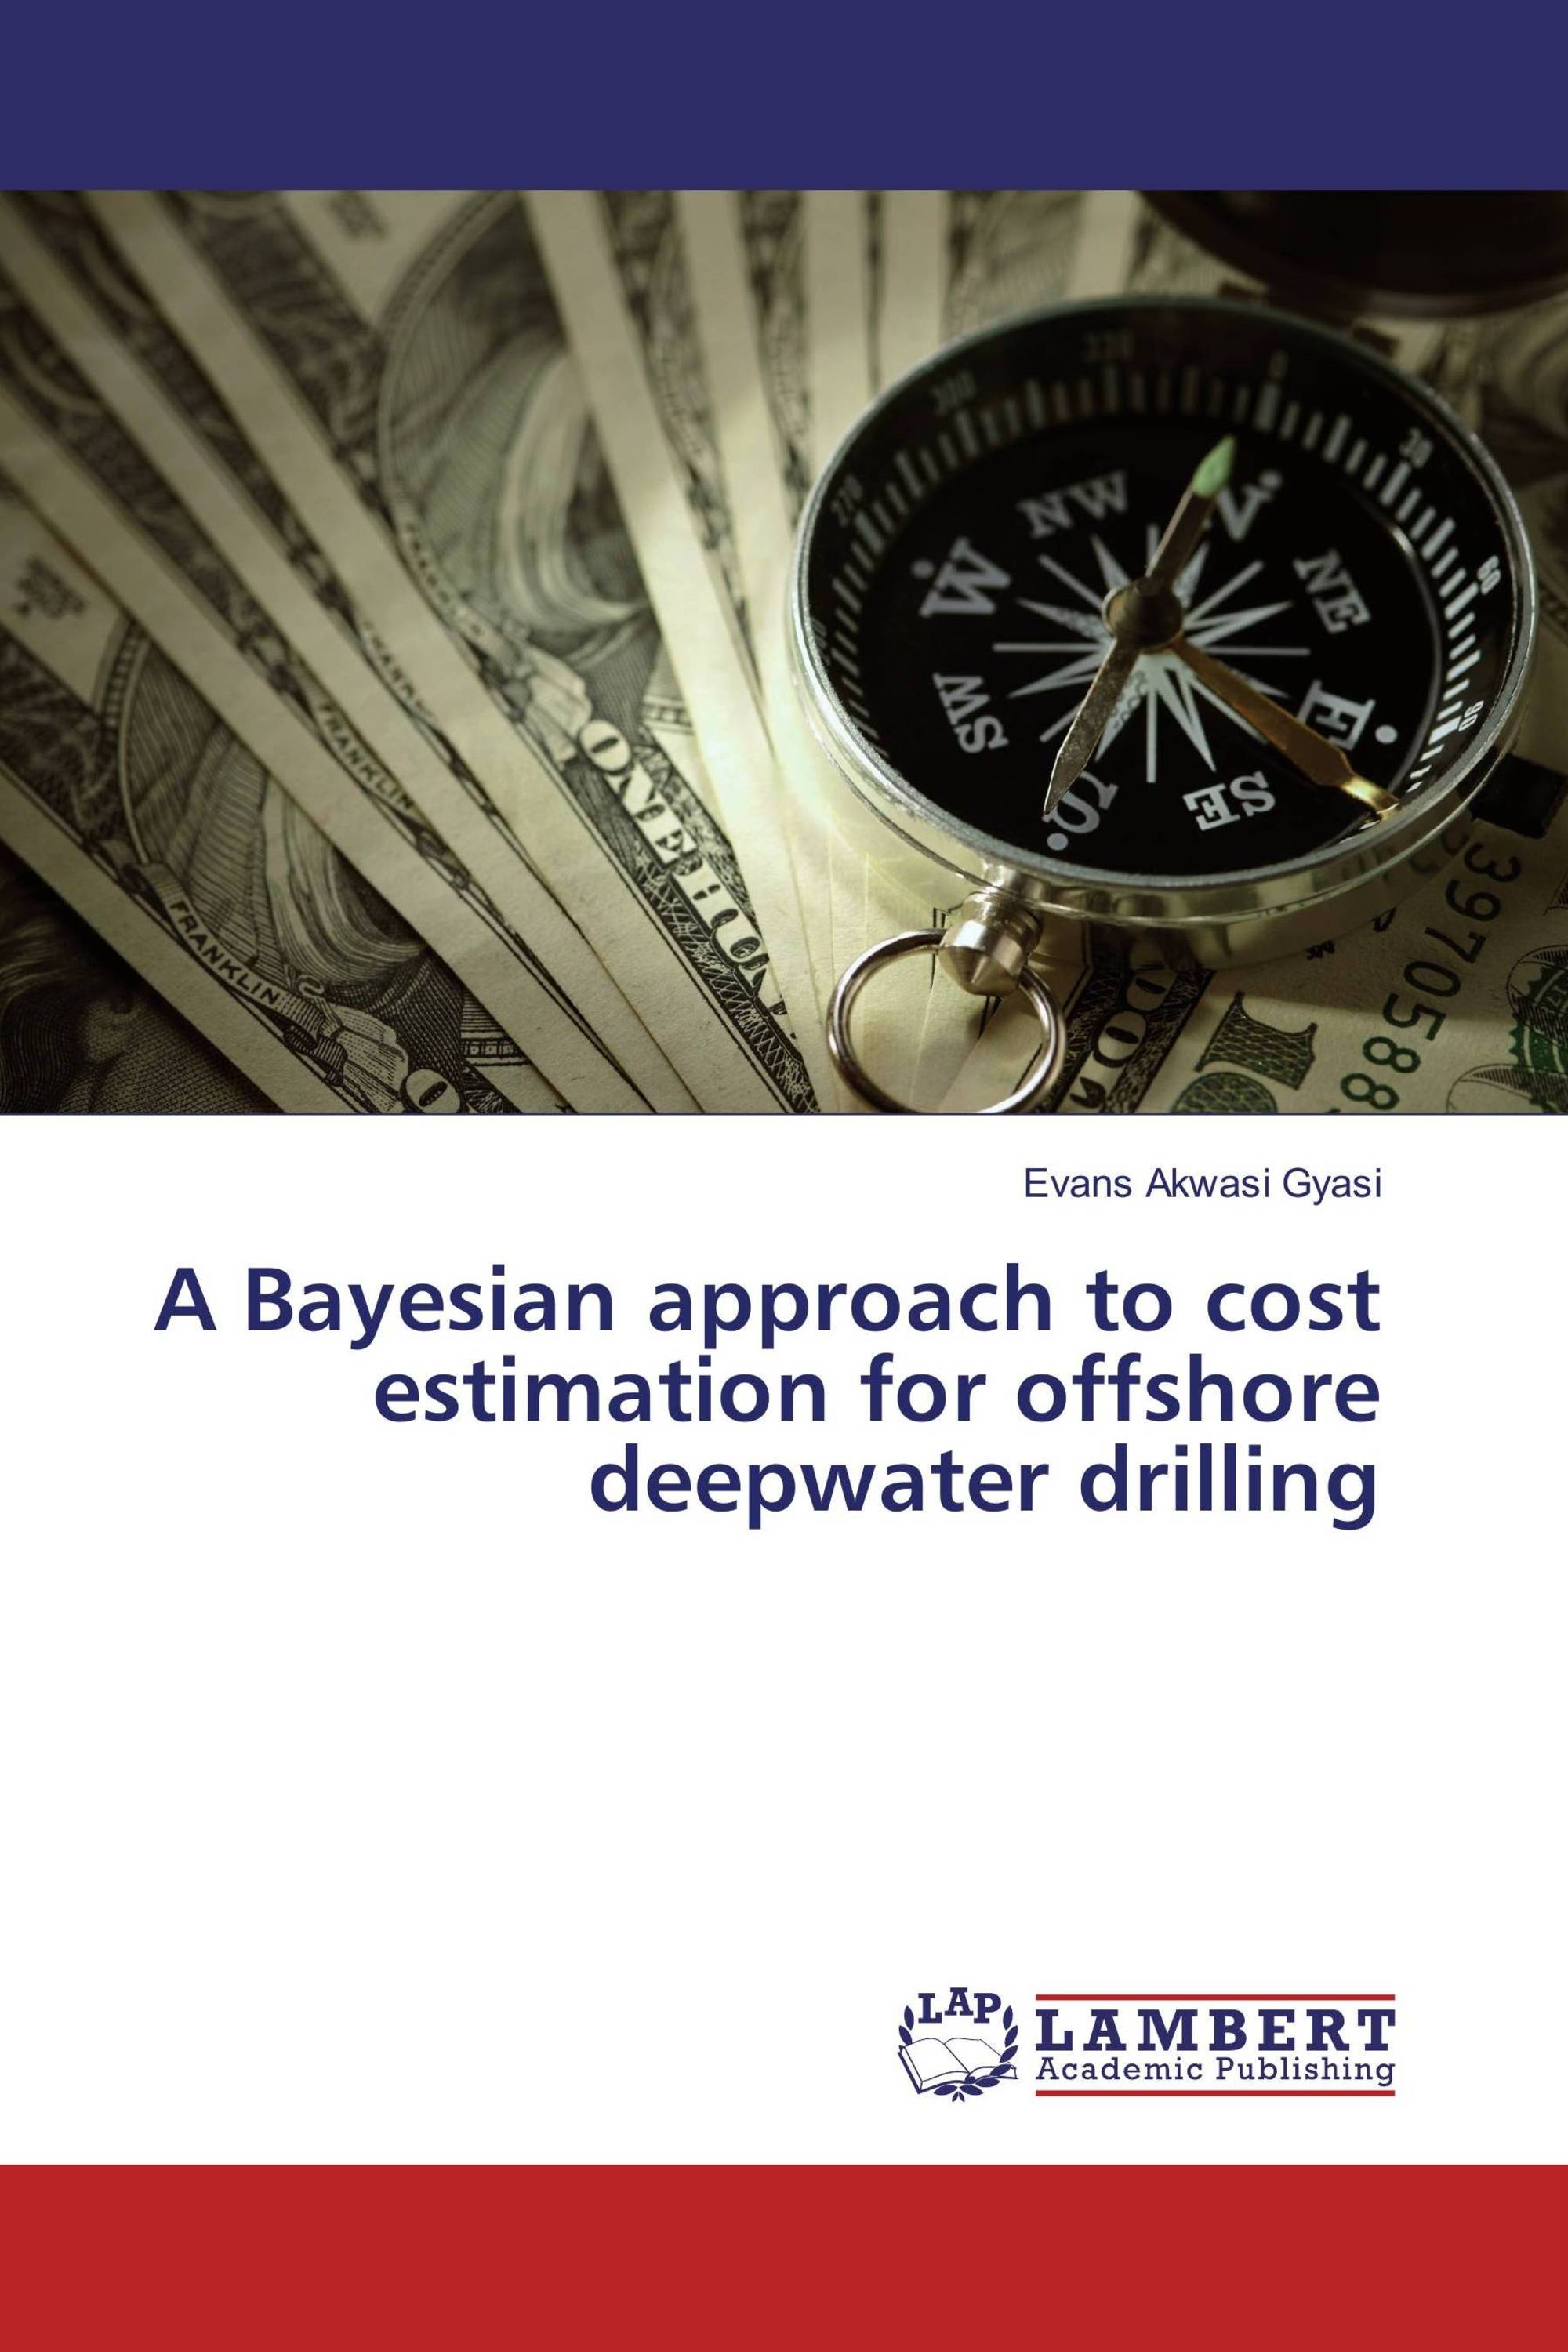 A Bayesian approach to cost estimation for offshore deepwater drilling